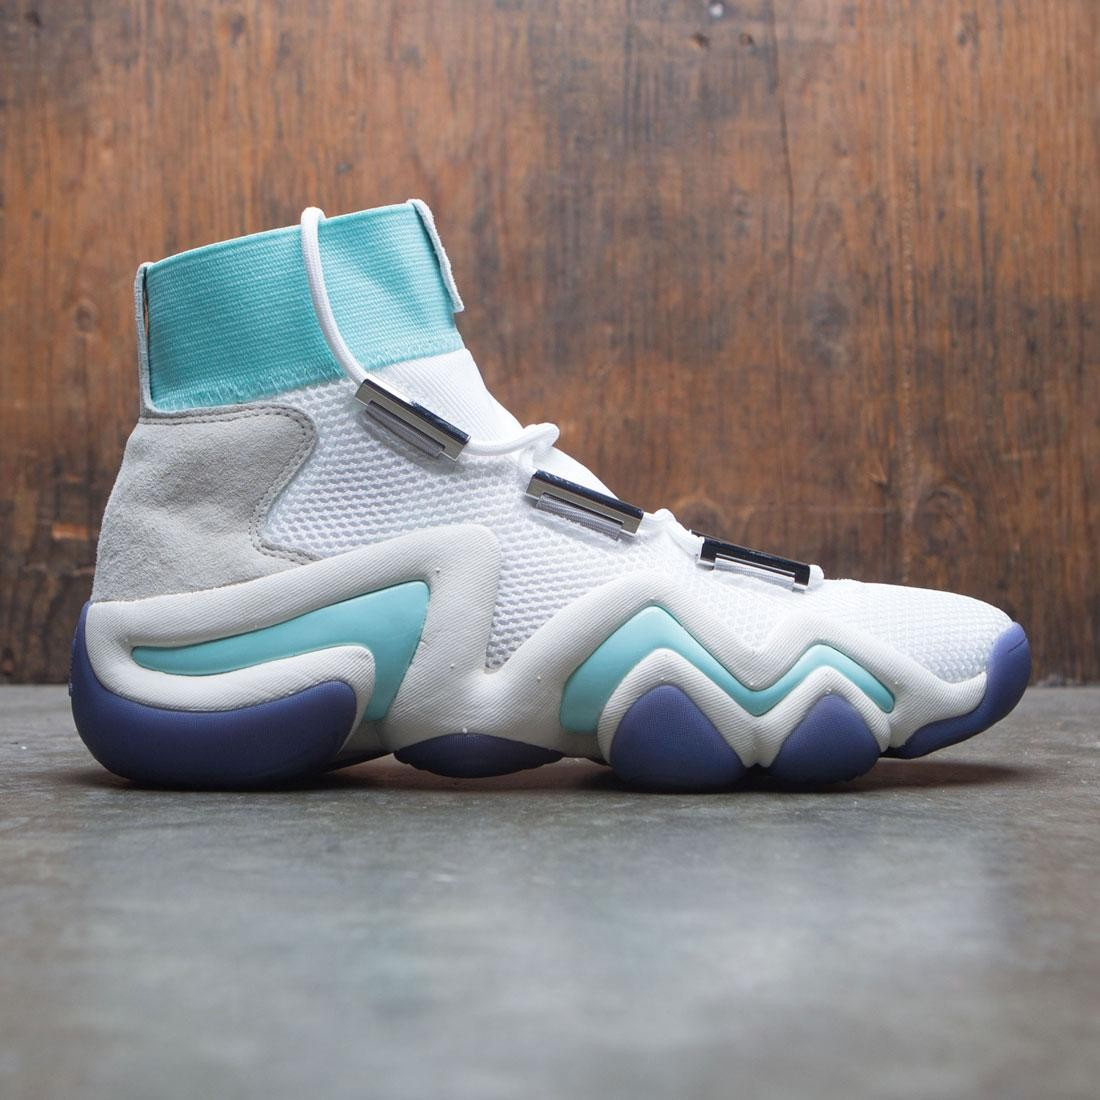 brand new b558b bef1c Adidas Consortium x Nice Kicks Men Crazy 8 AD white off white energy aqua